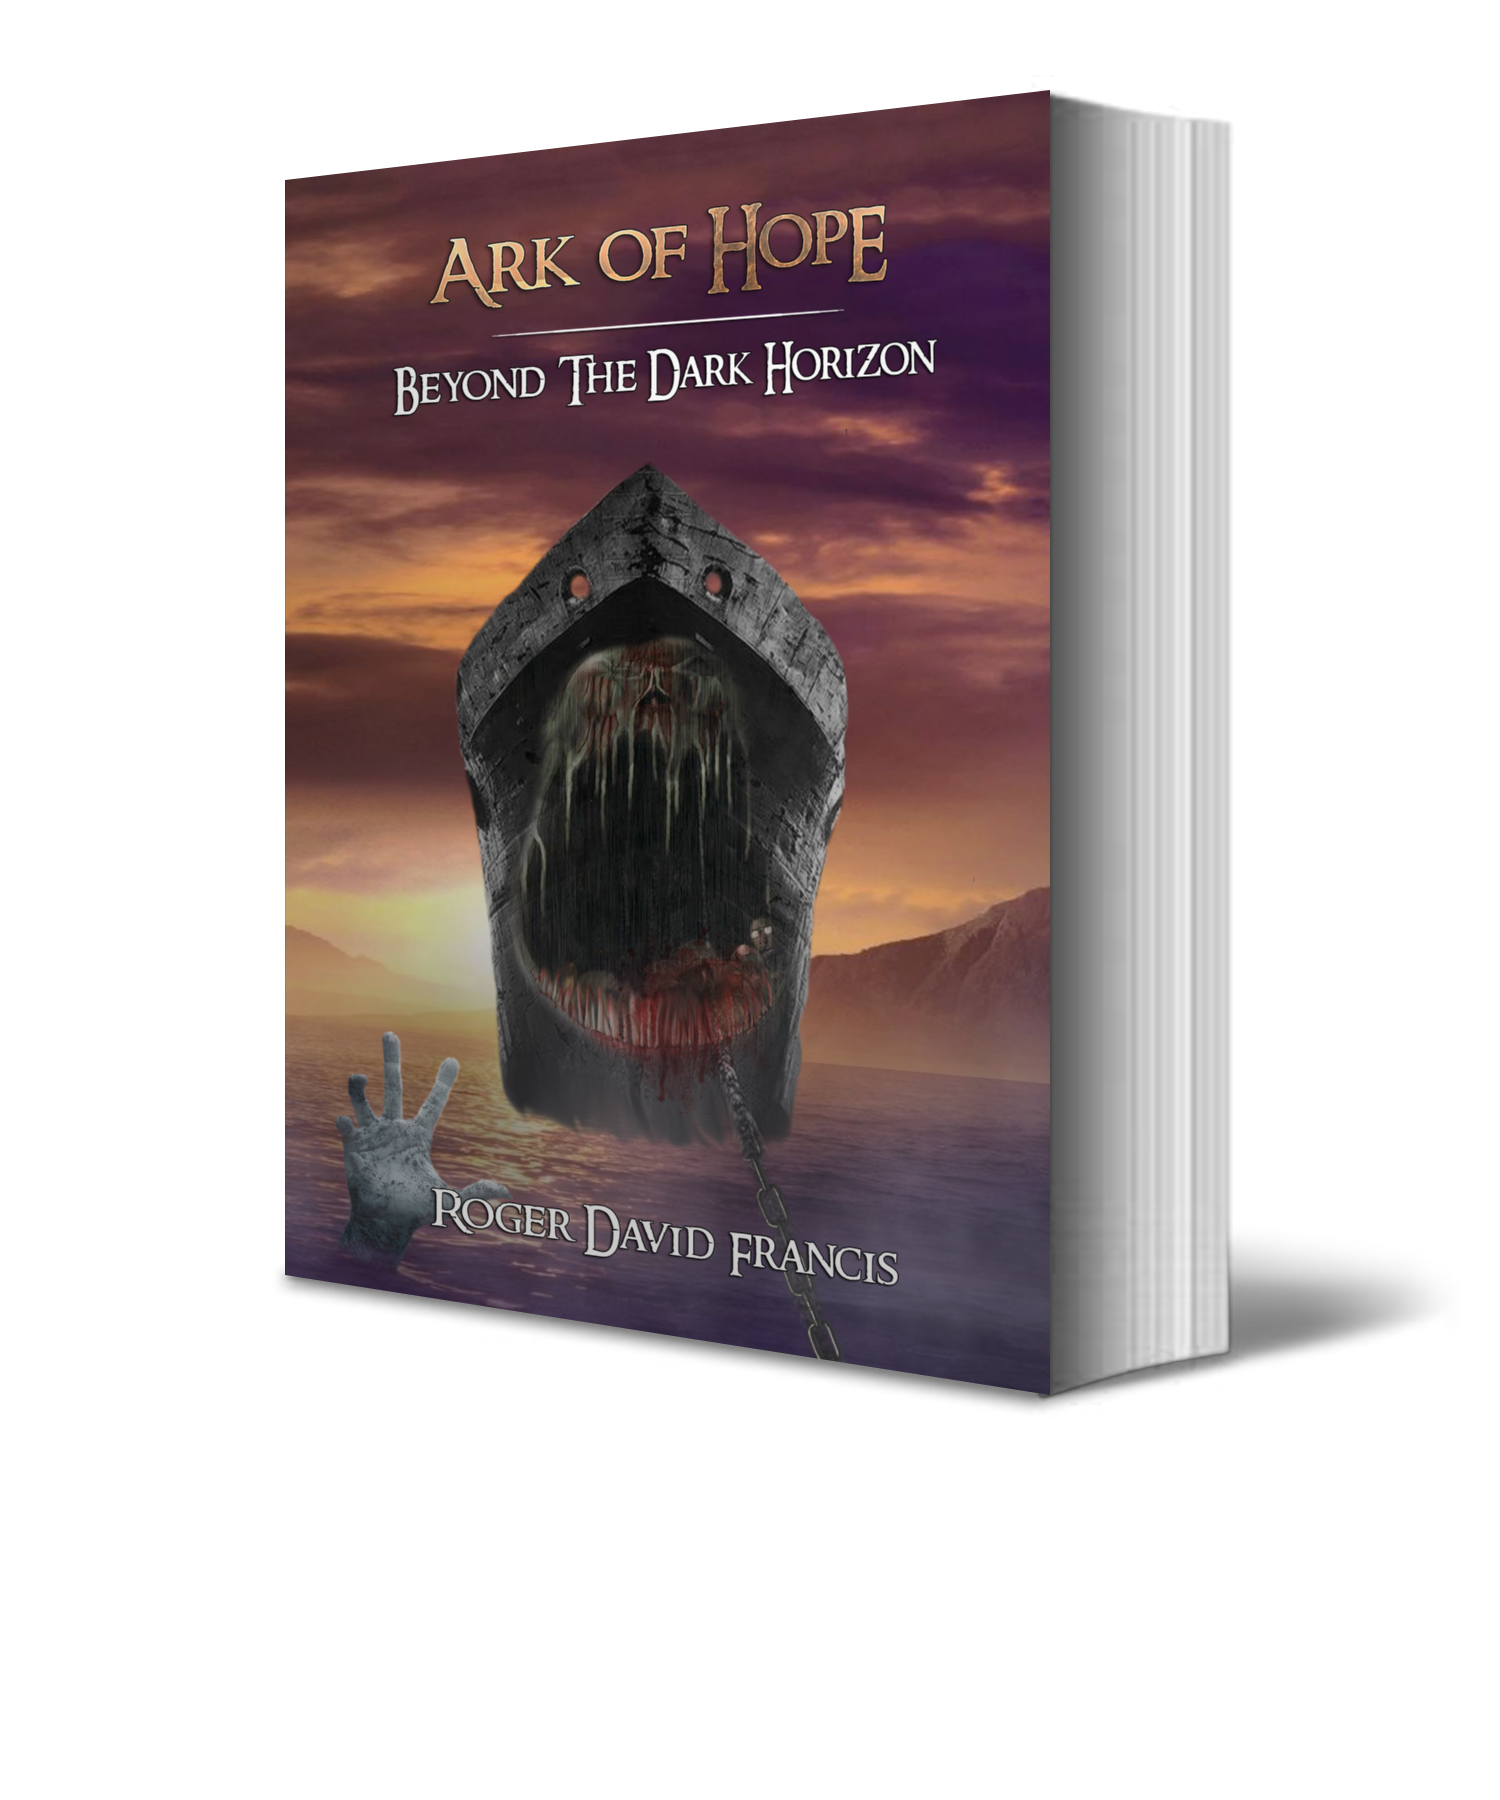 ARK OF HOPE